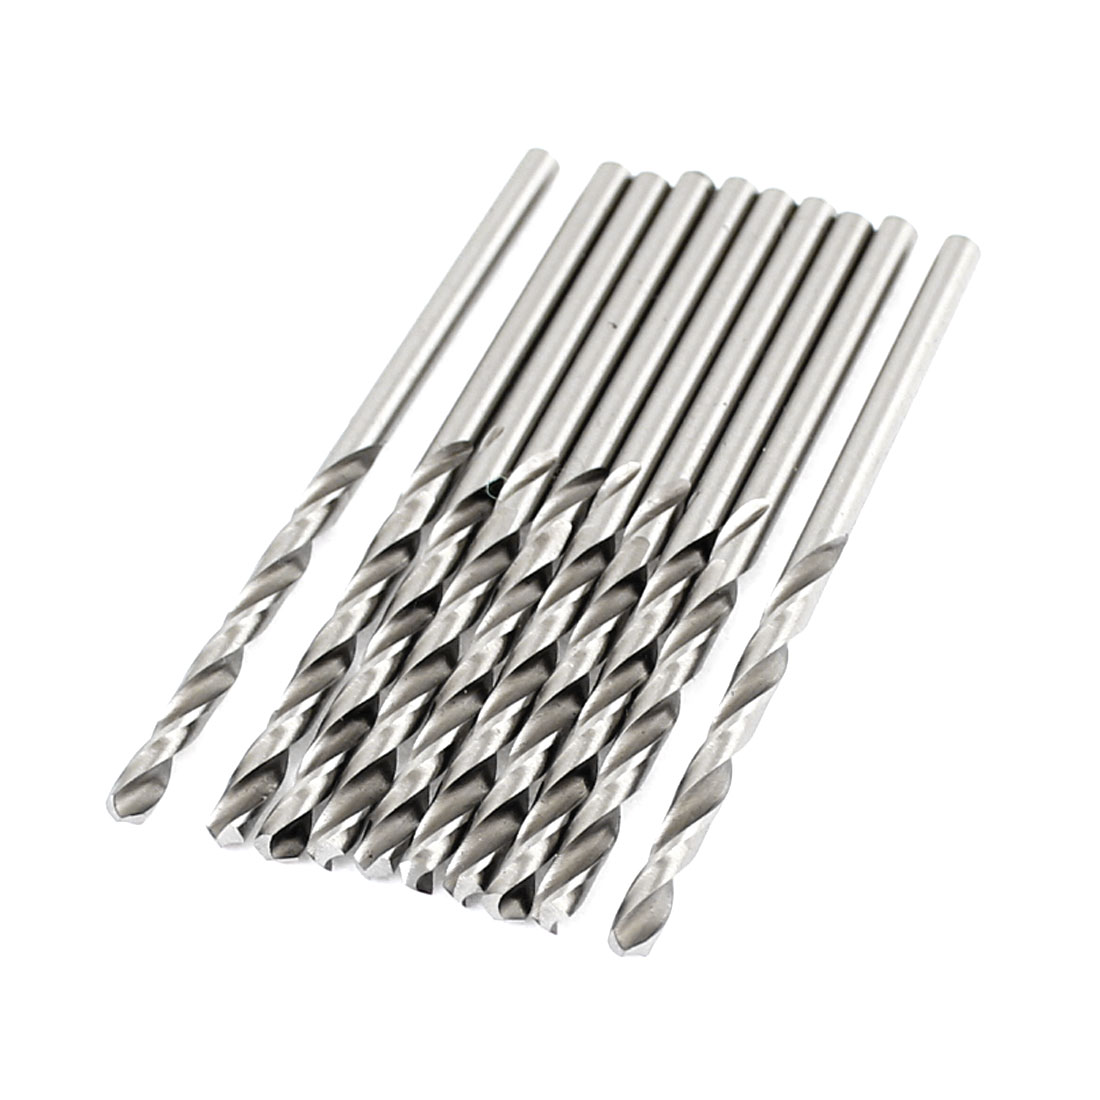 10 x HSS High Speed Steel 2.6mm Diameter Tip Straight Shank Twist Drill Bits